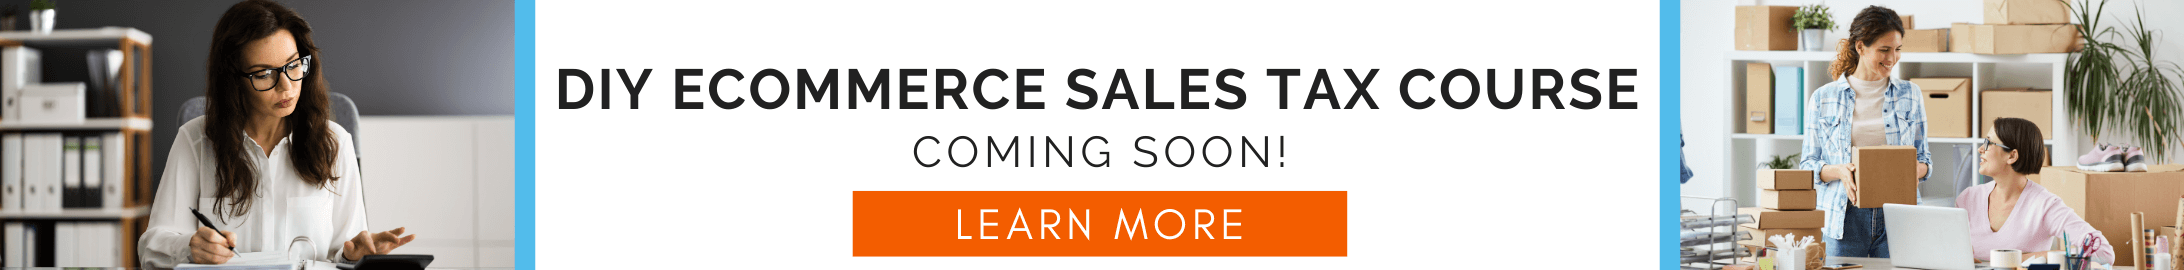 Ecommerce DIY Sales Tax Course - COMING SOON!